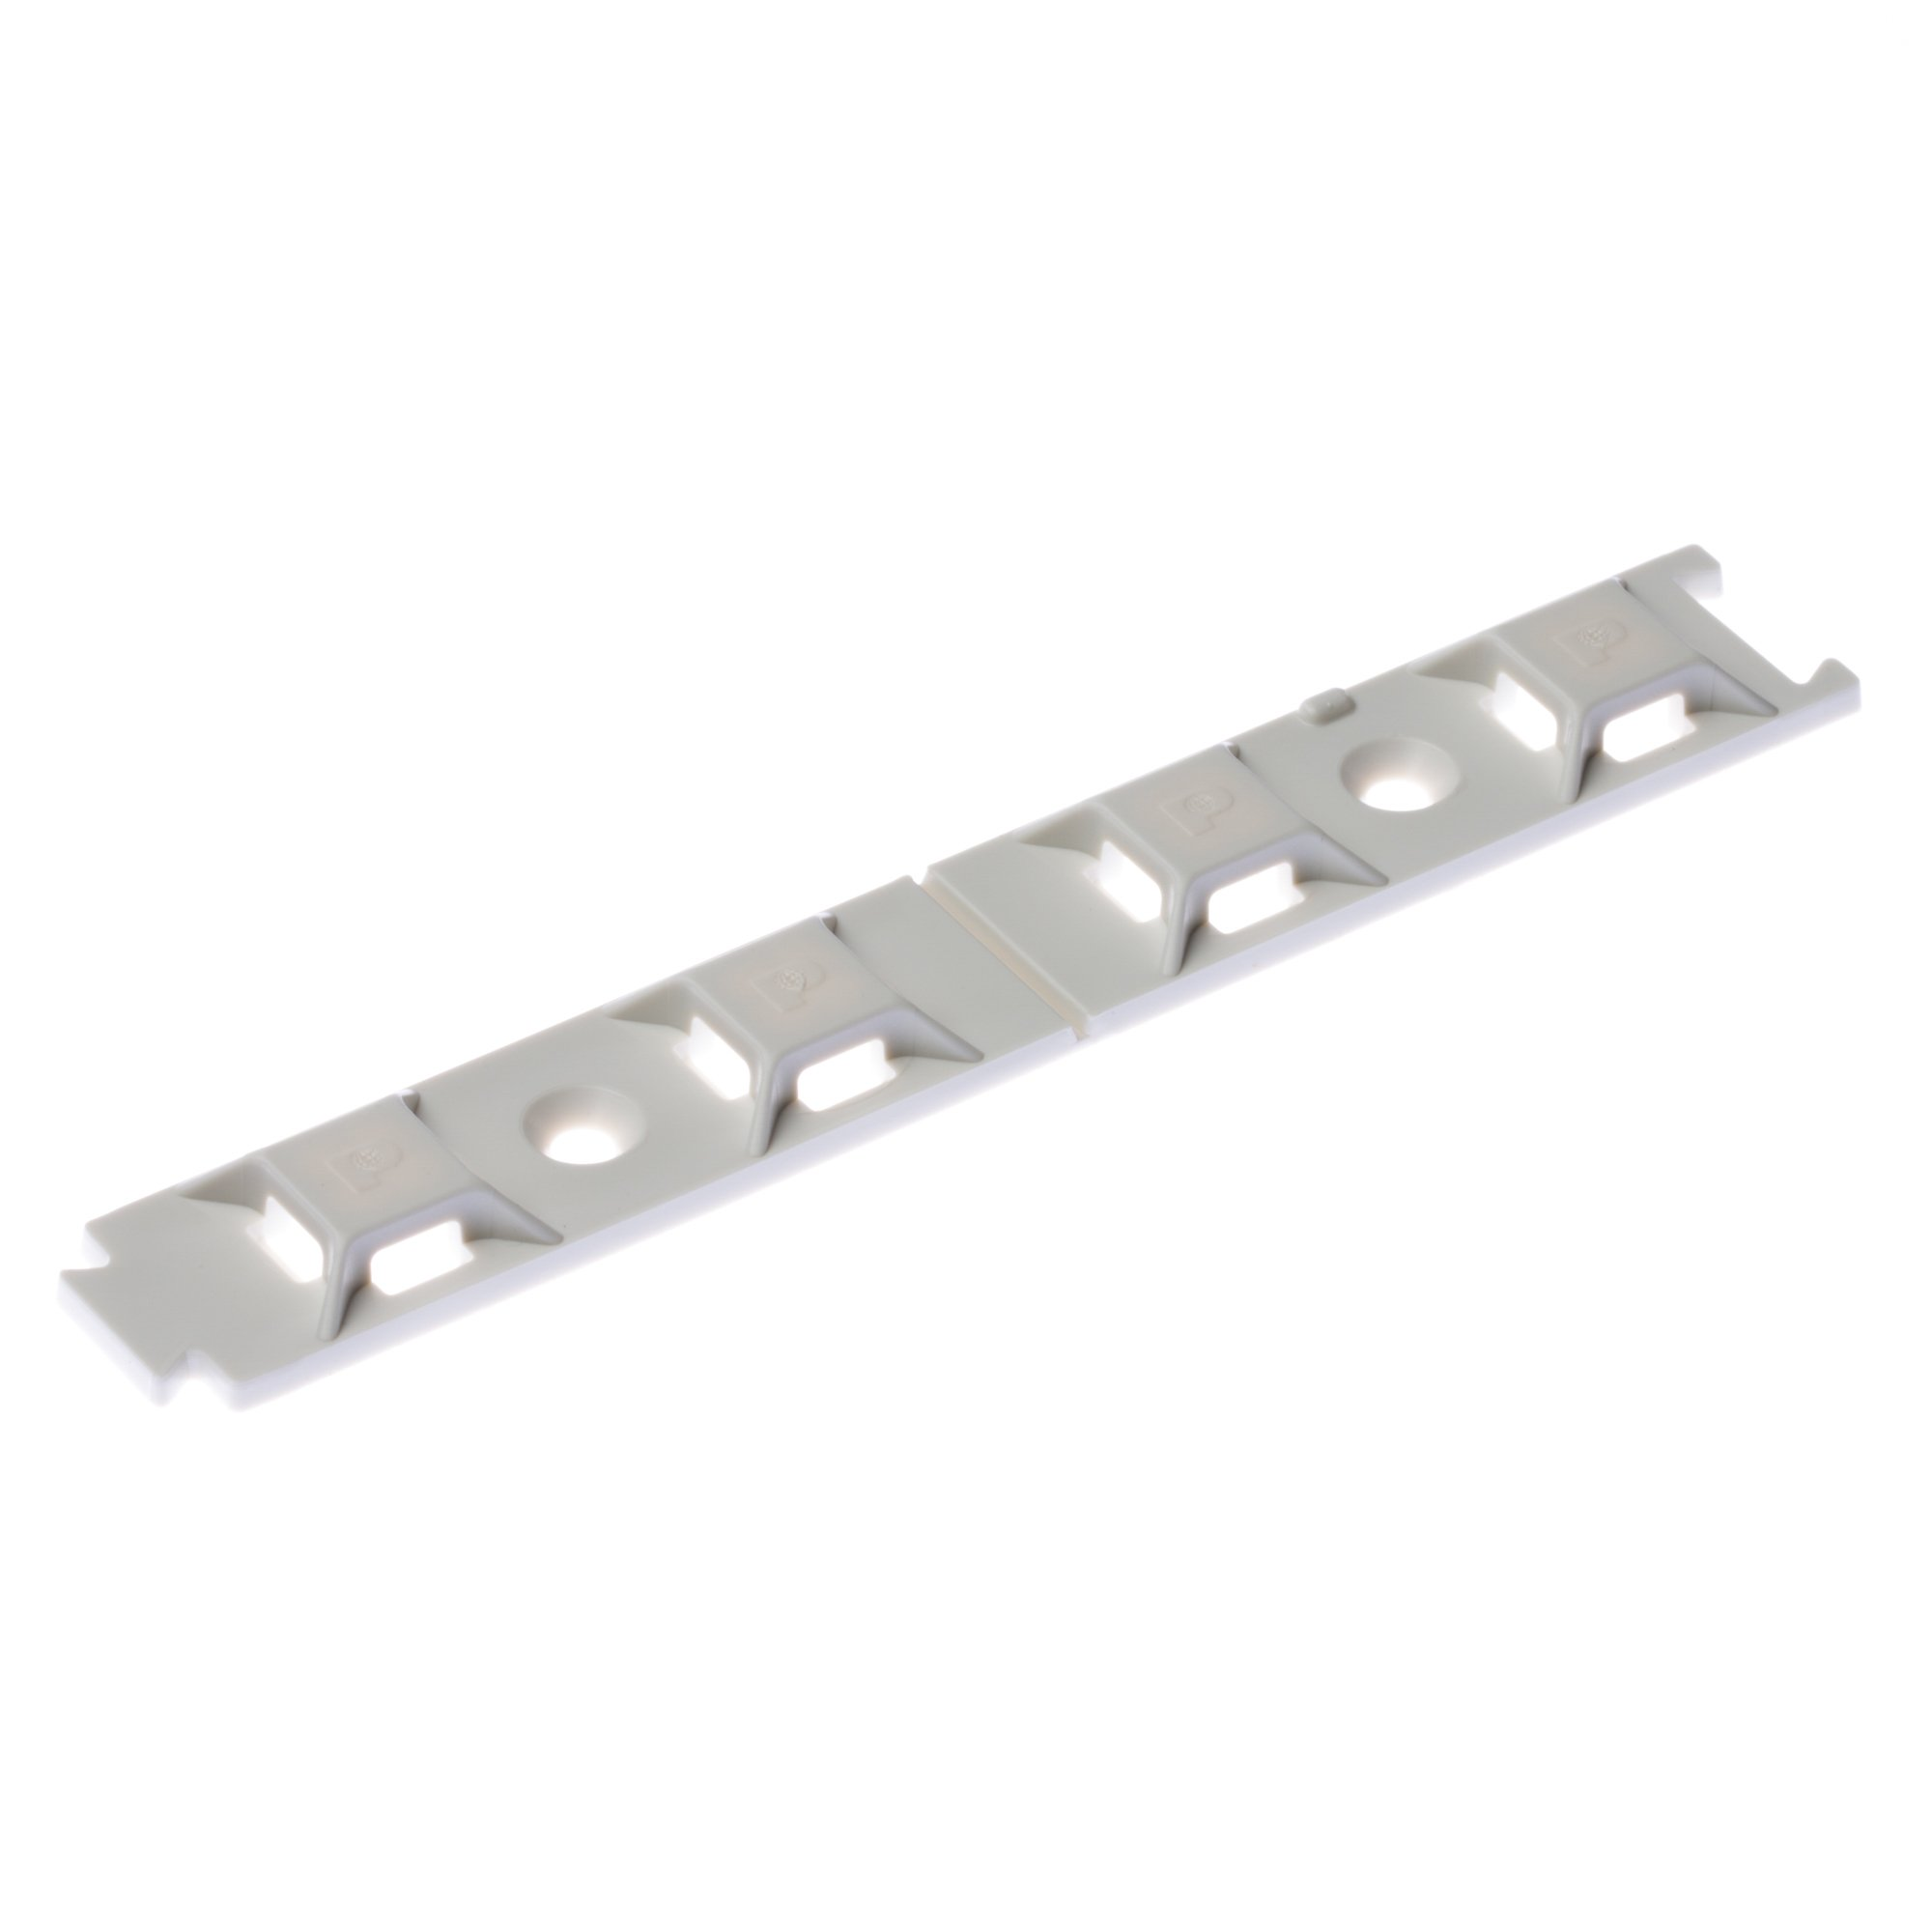 Panduit ABMQS-S6-C Multipe Bridge Adhesive Backed Cable Tie Mount, ABMQ Mount, Screw/User-Supplied Adhesive, Indoors/High Temp Environment, ABS, #6 Screw Mounting Method, White (Pack of 100)